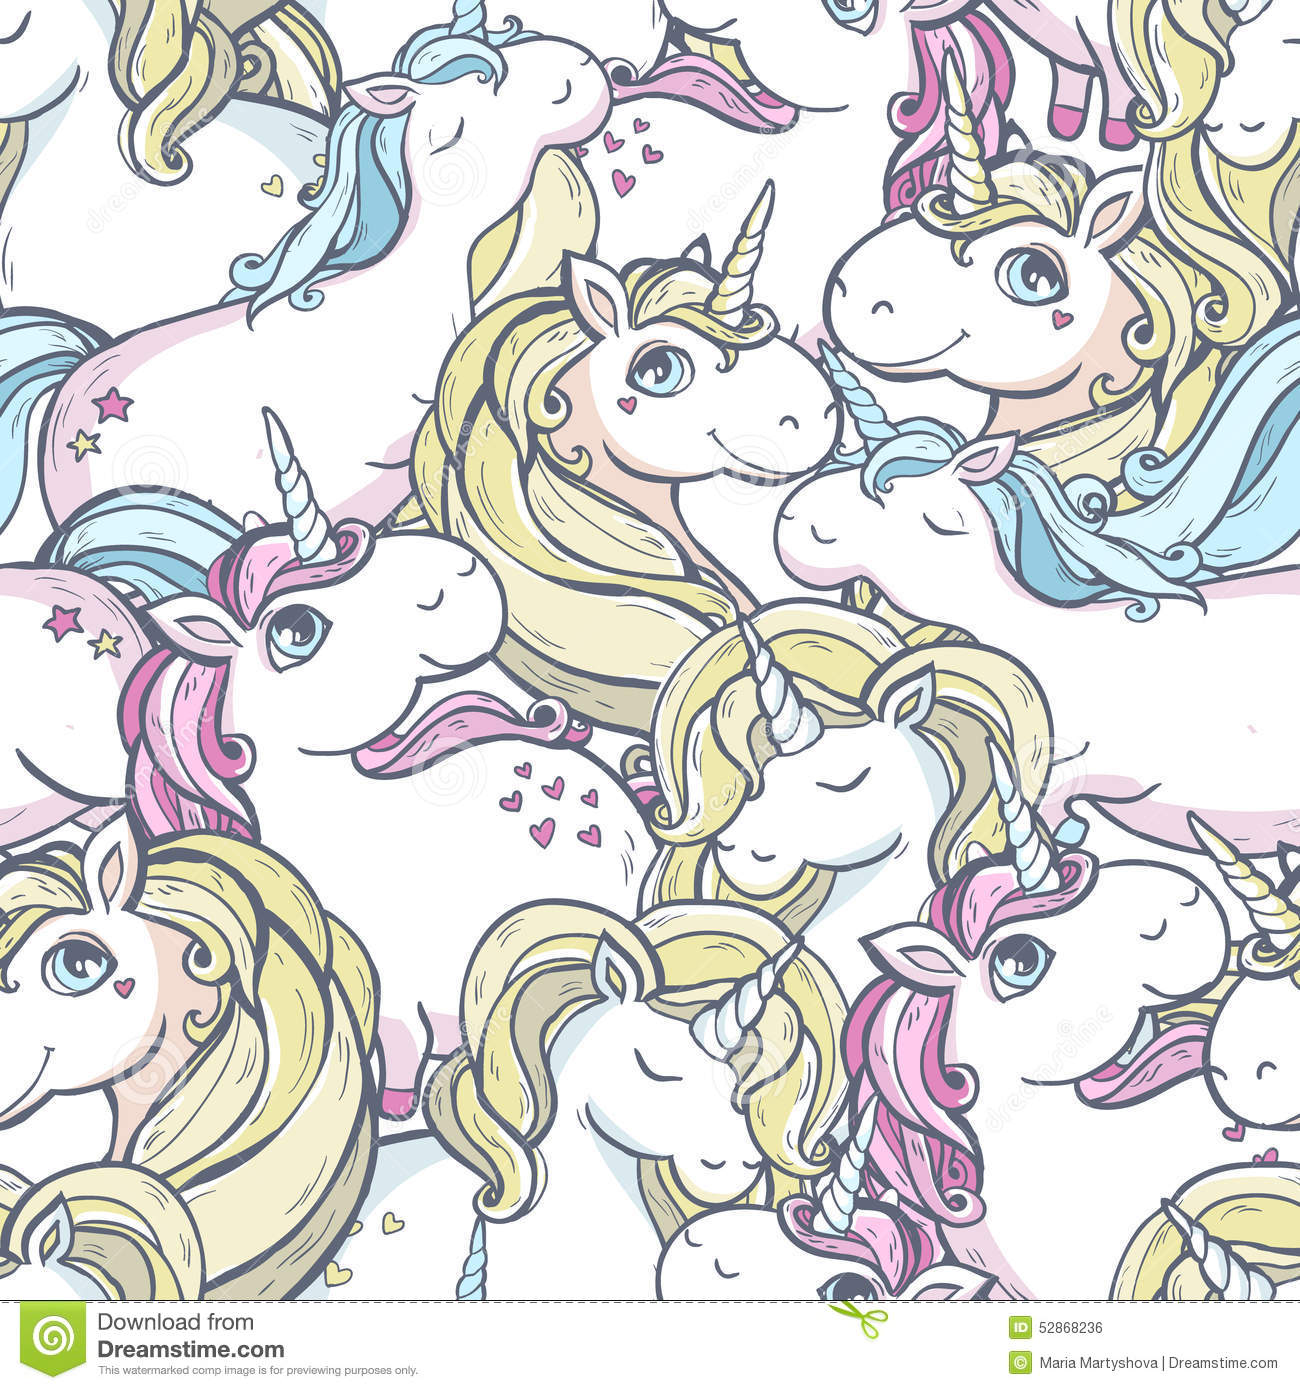 Pattern with unicorns.